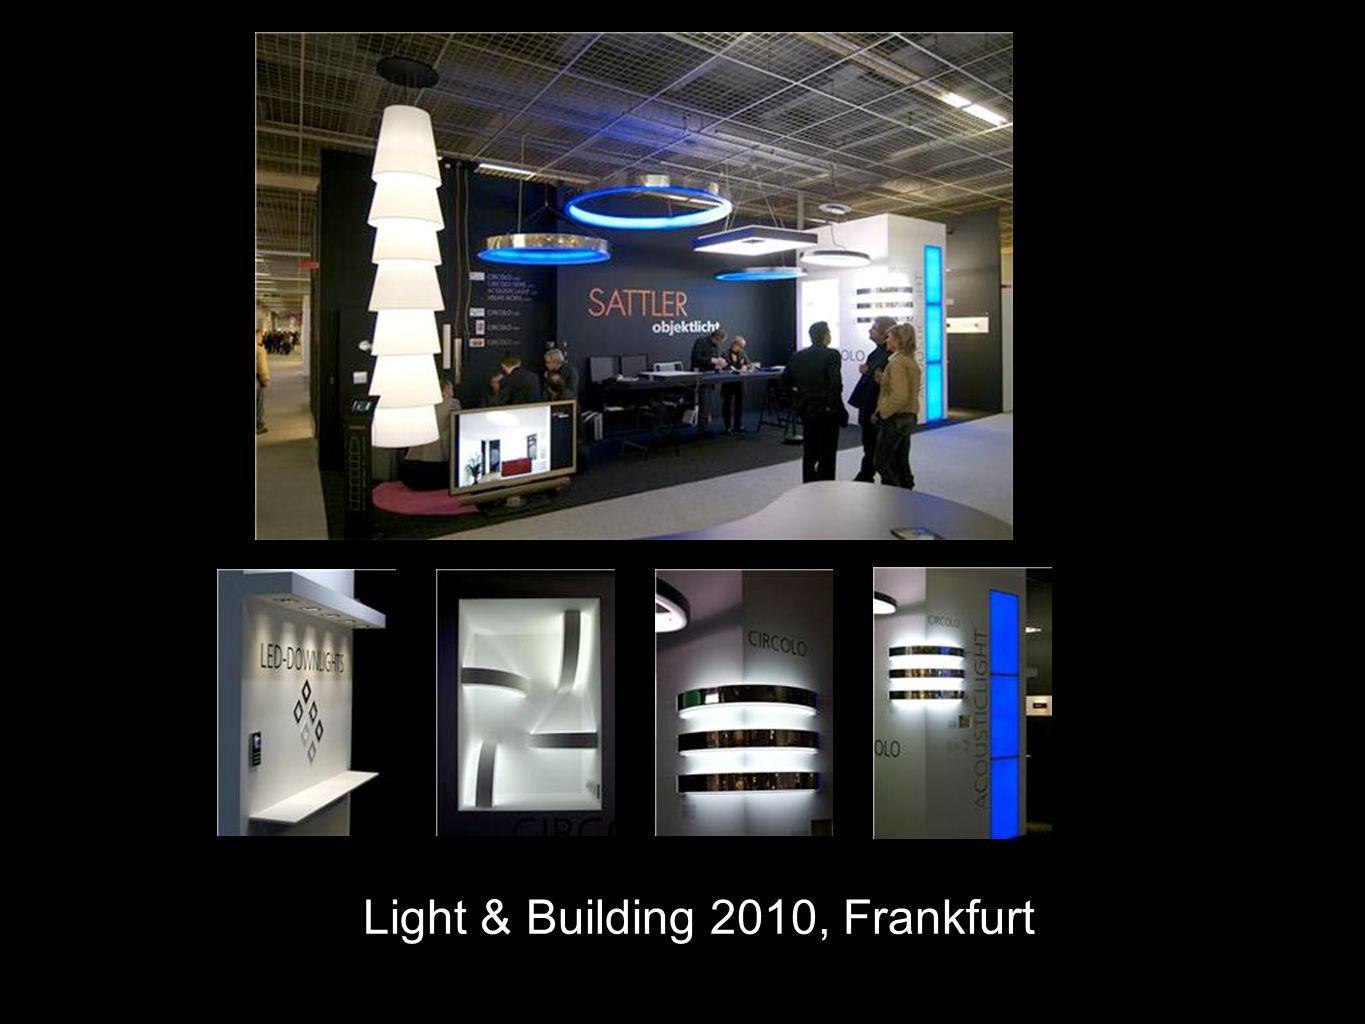 Light & Building 2010, Frankfurt